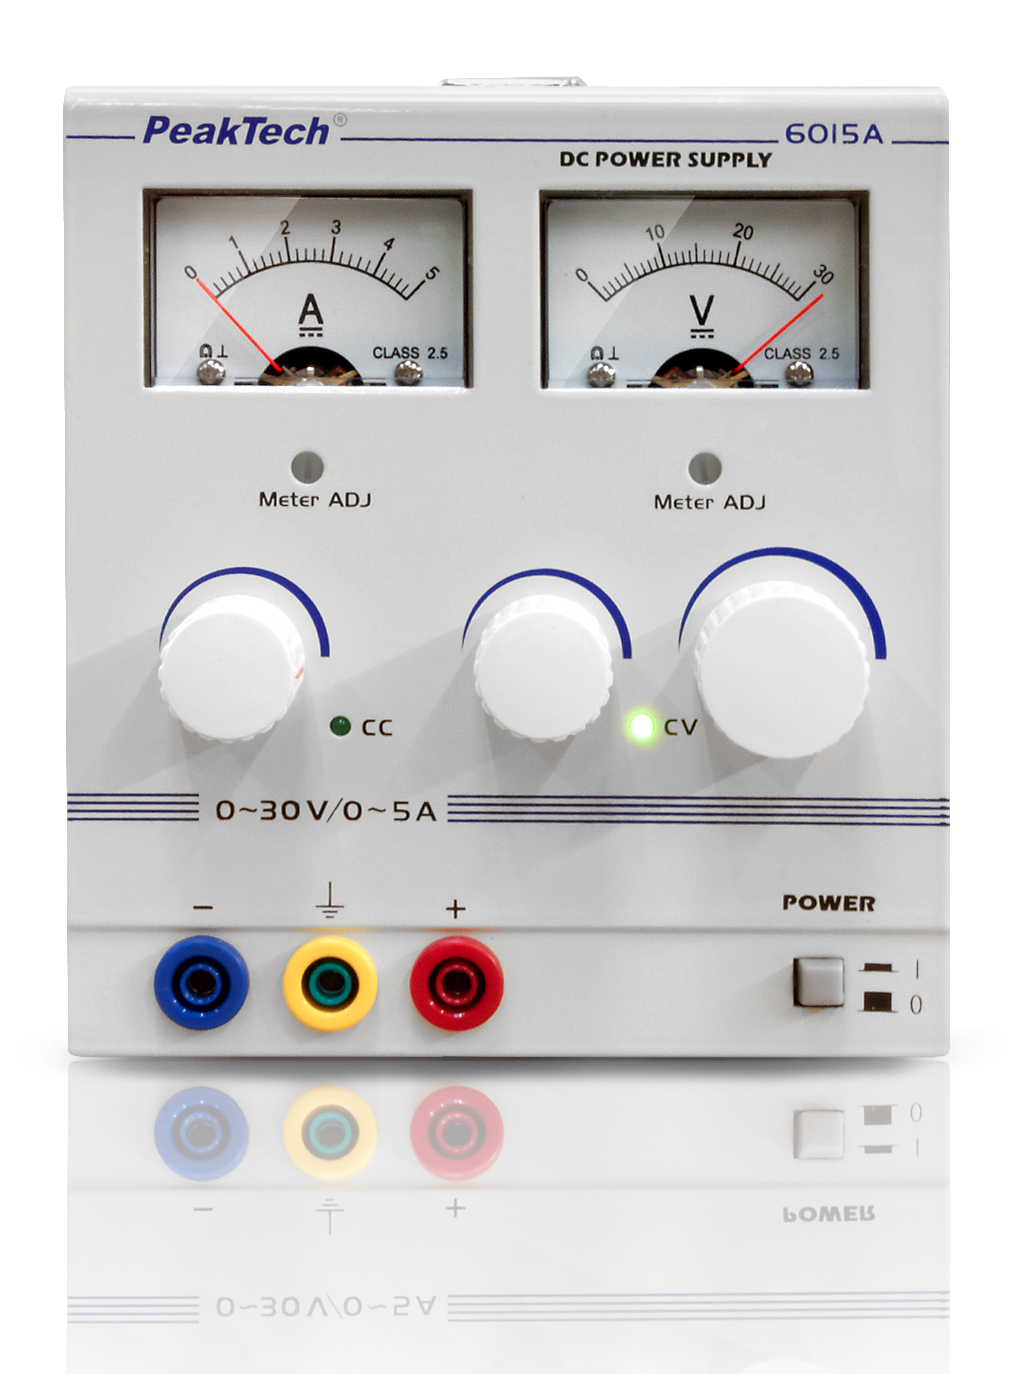 «PeakTech® P 6015 A» Analogue Power Supply, 0 - 30 V/0 - 5 A DC